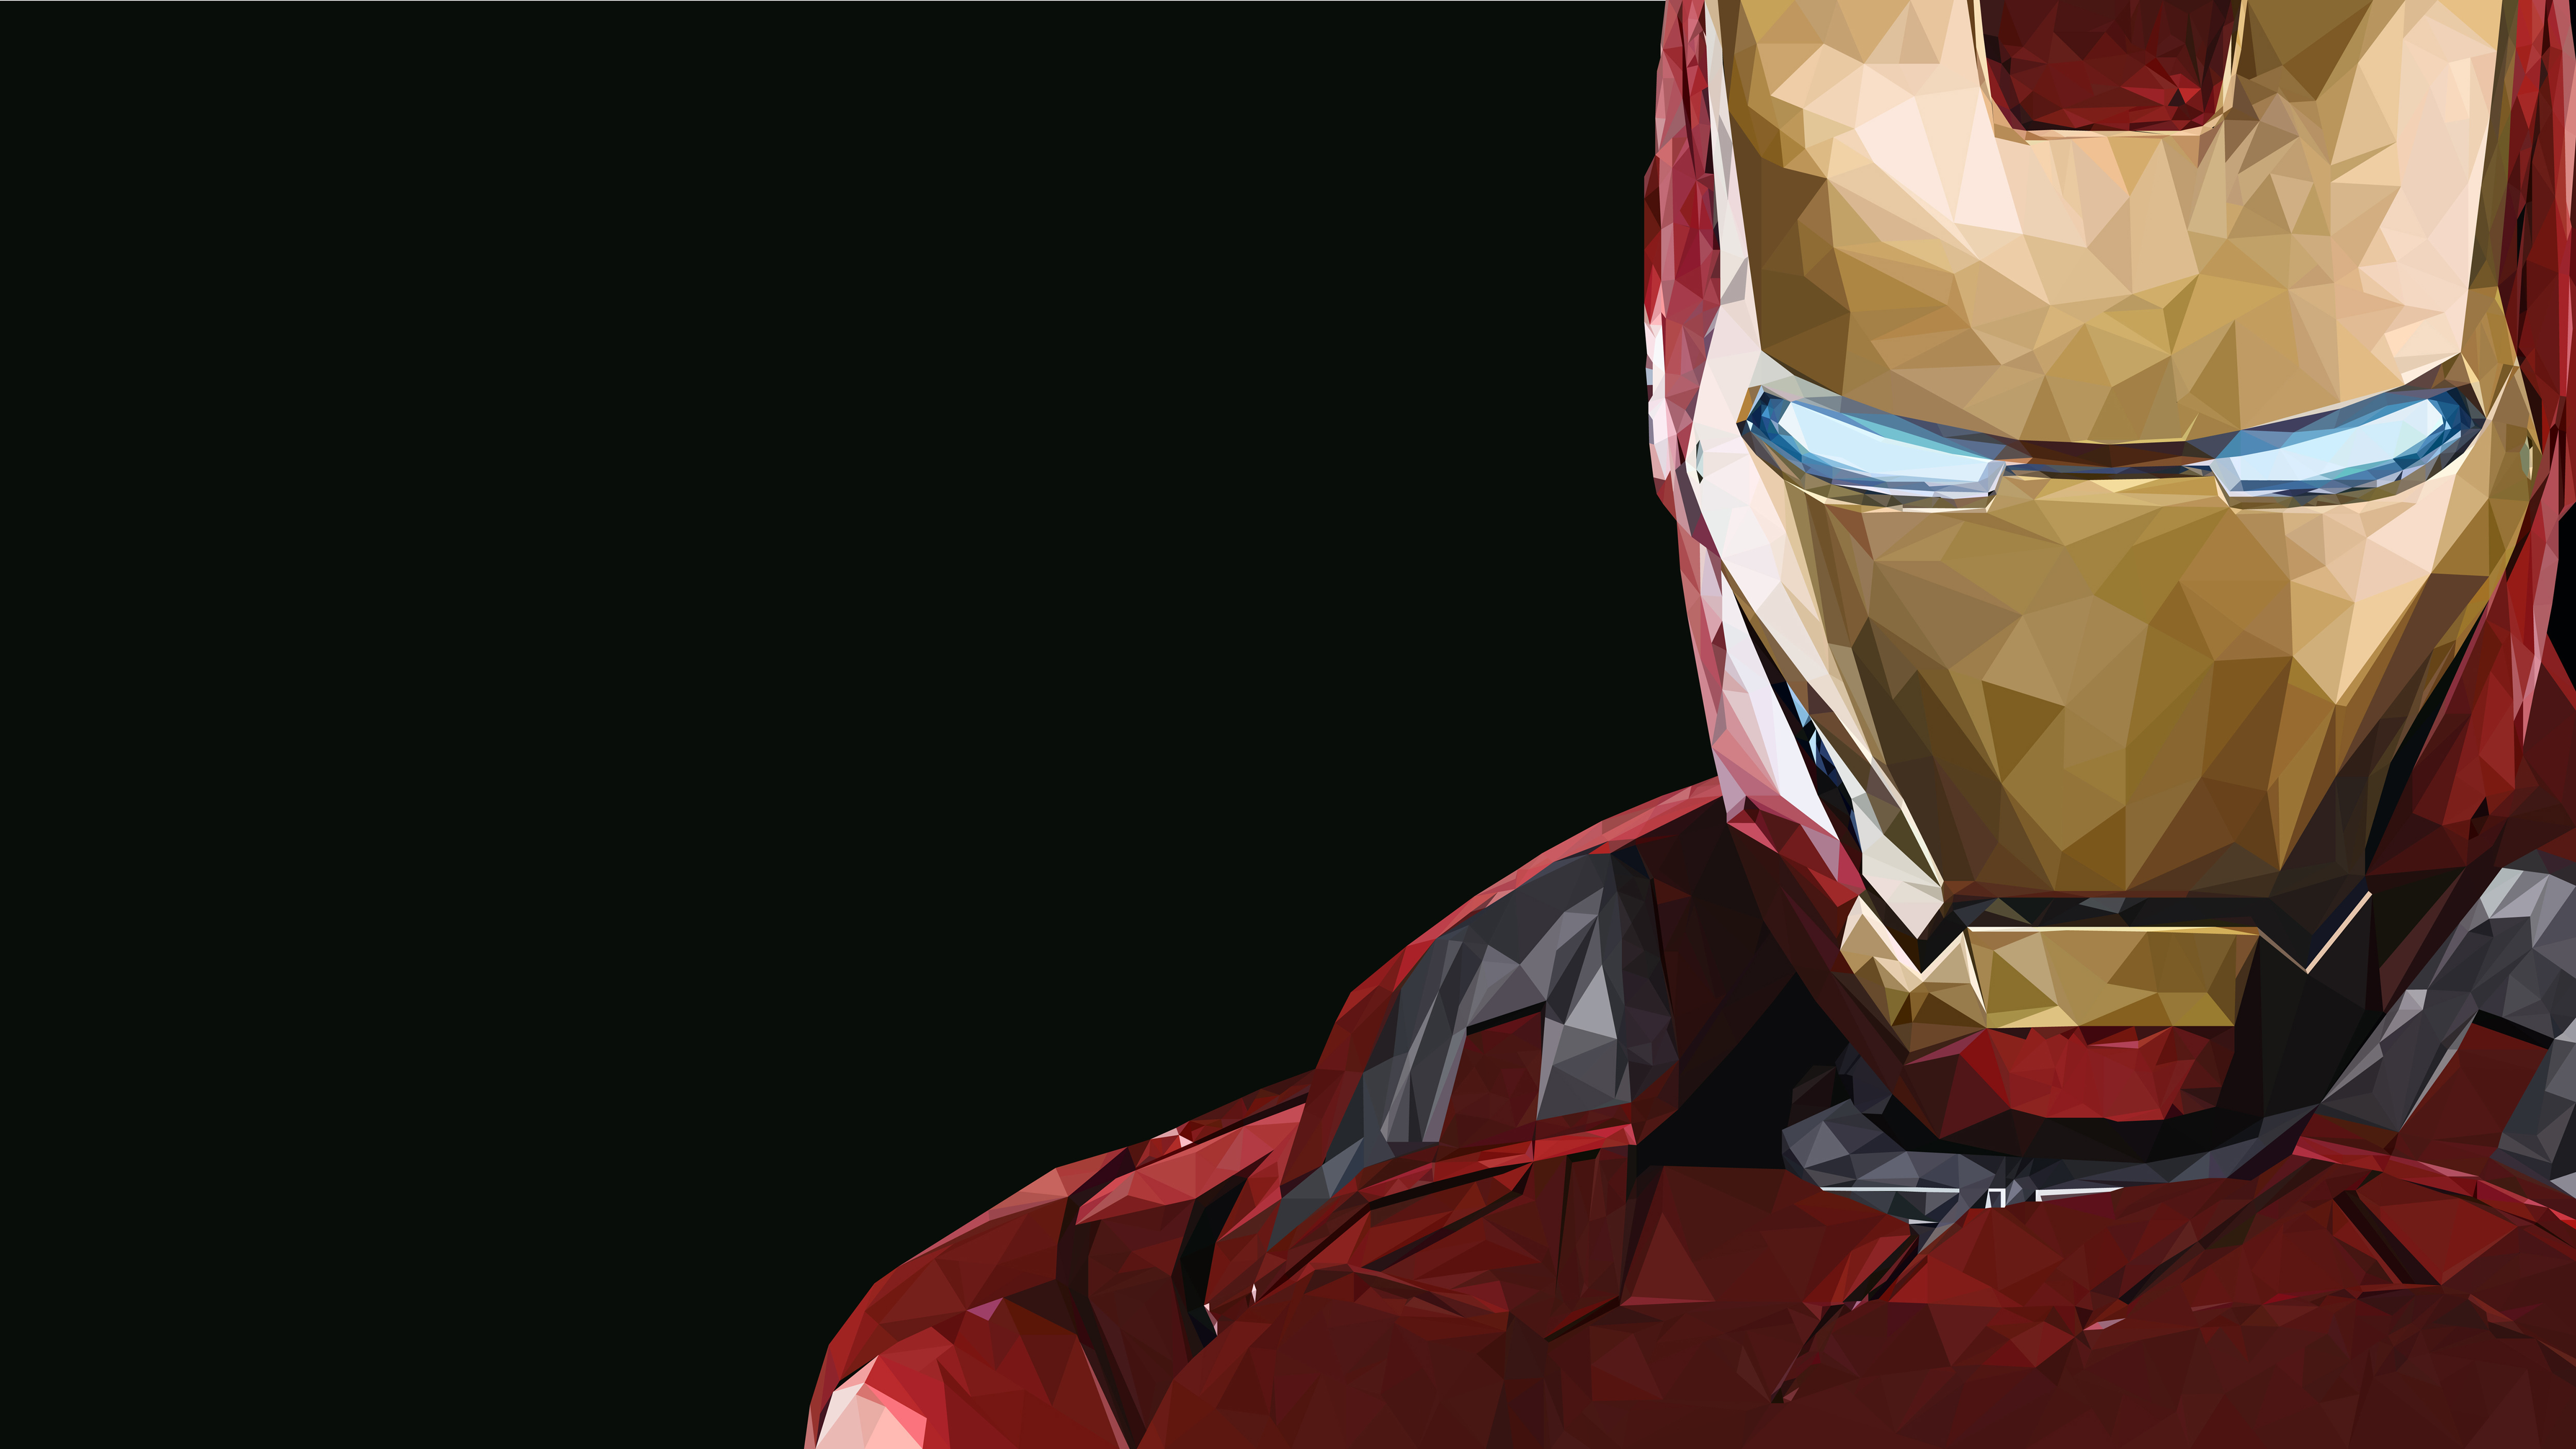 Iron man wallpapers images photos pictures backgrounds - Iron man wallpaper 4k ...